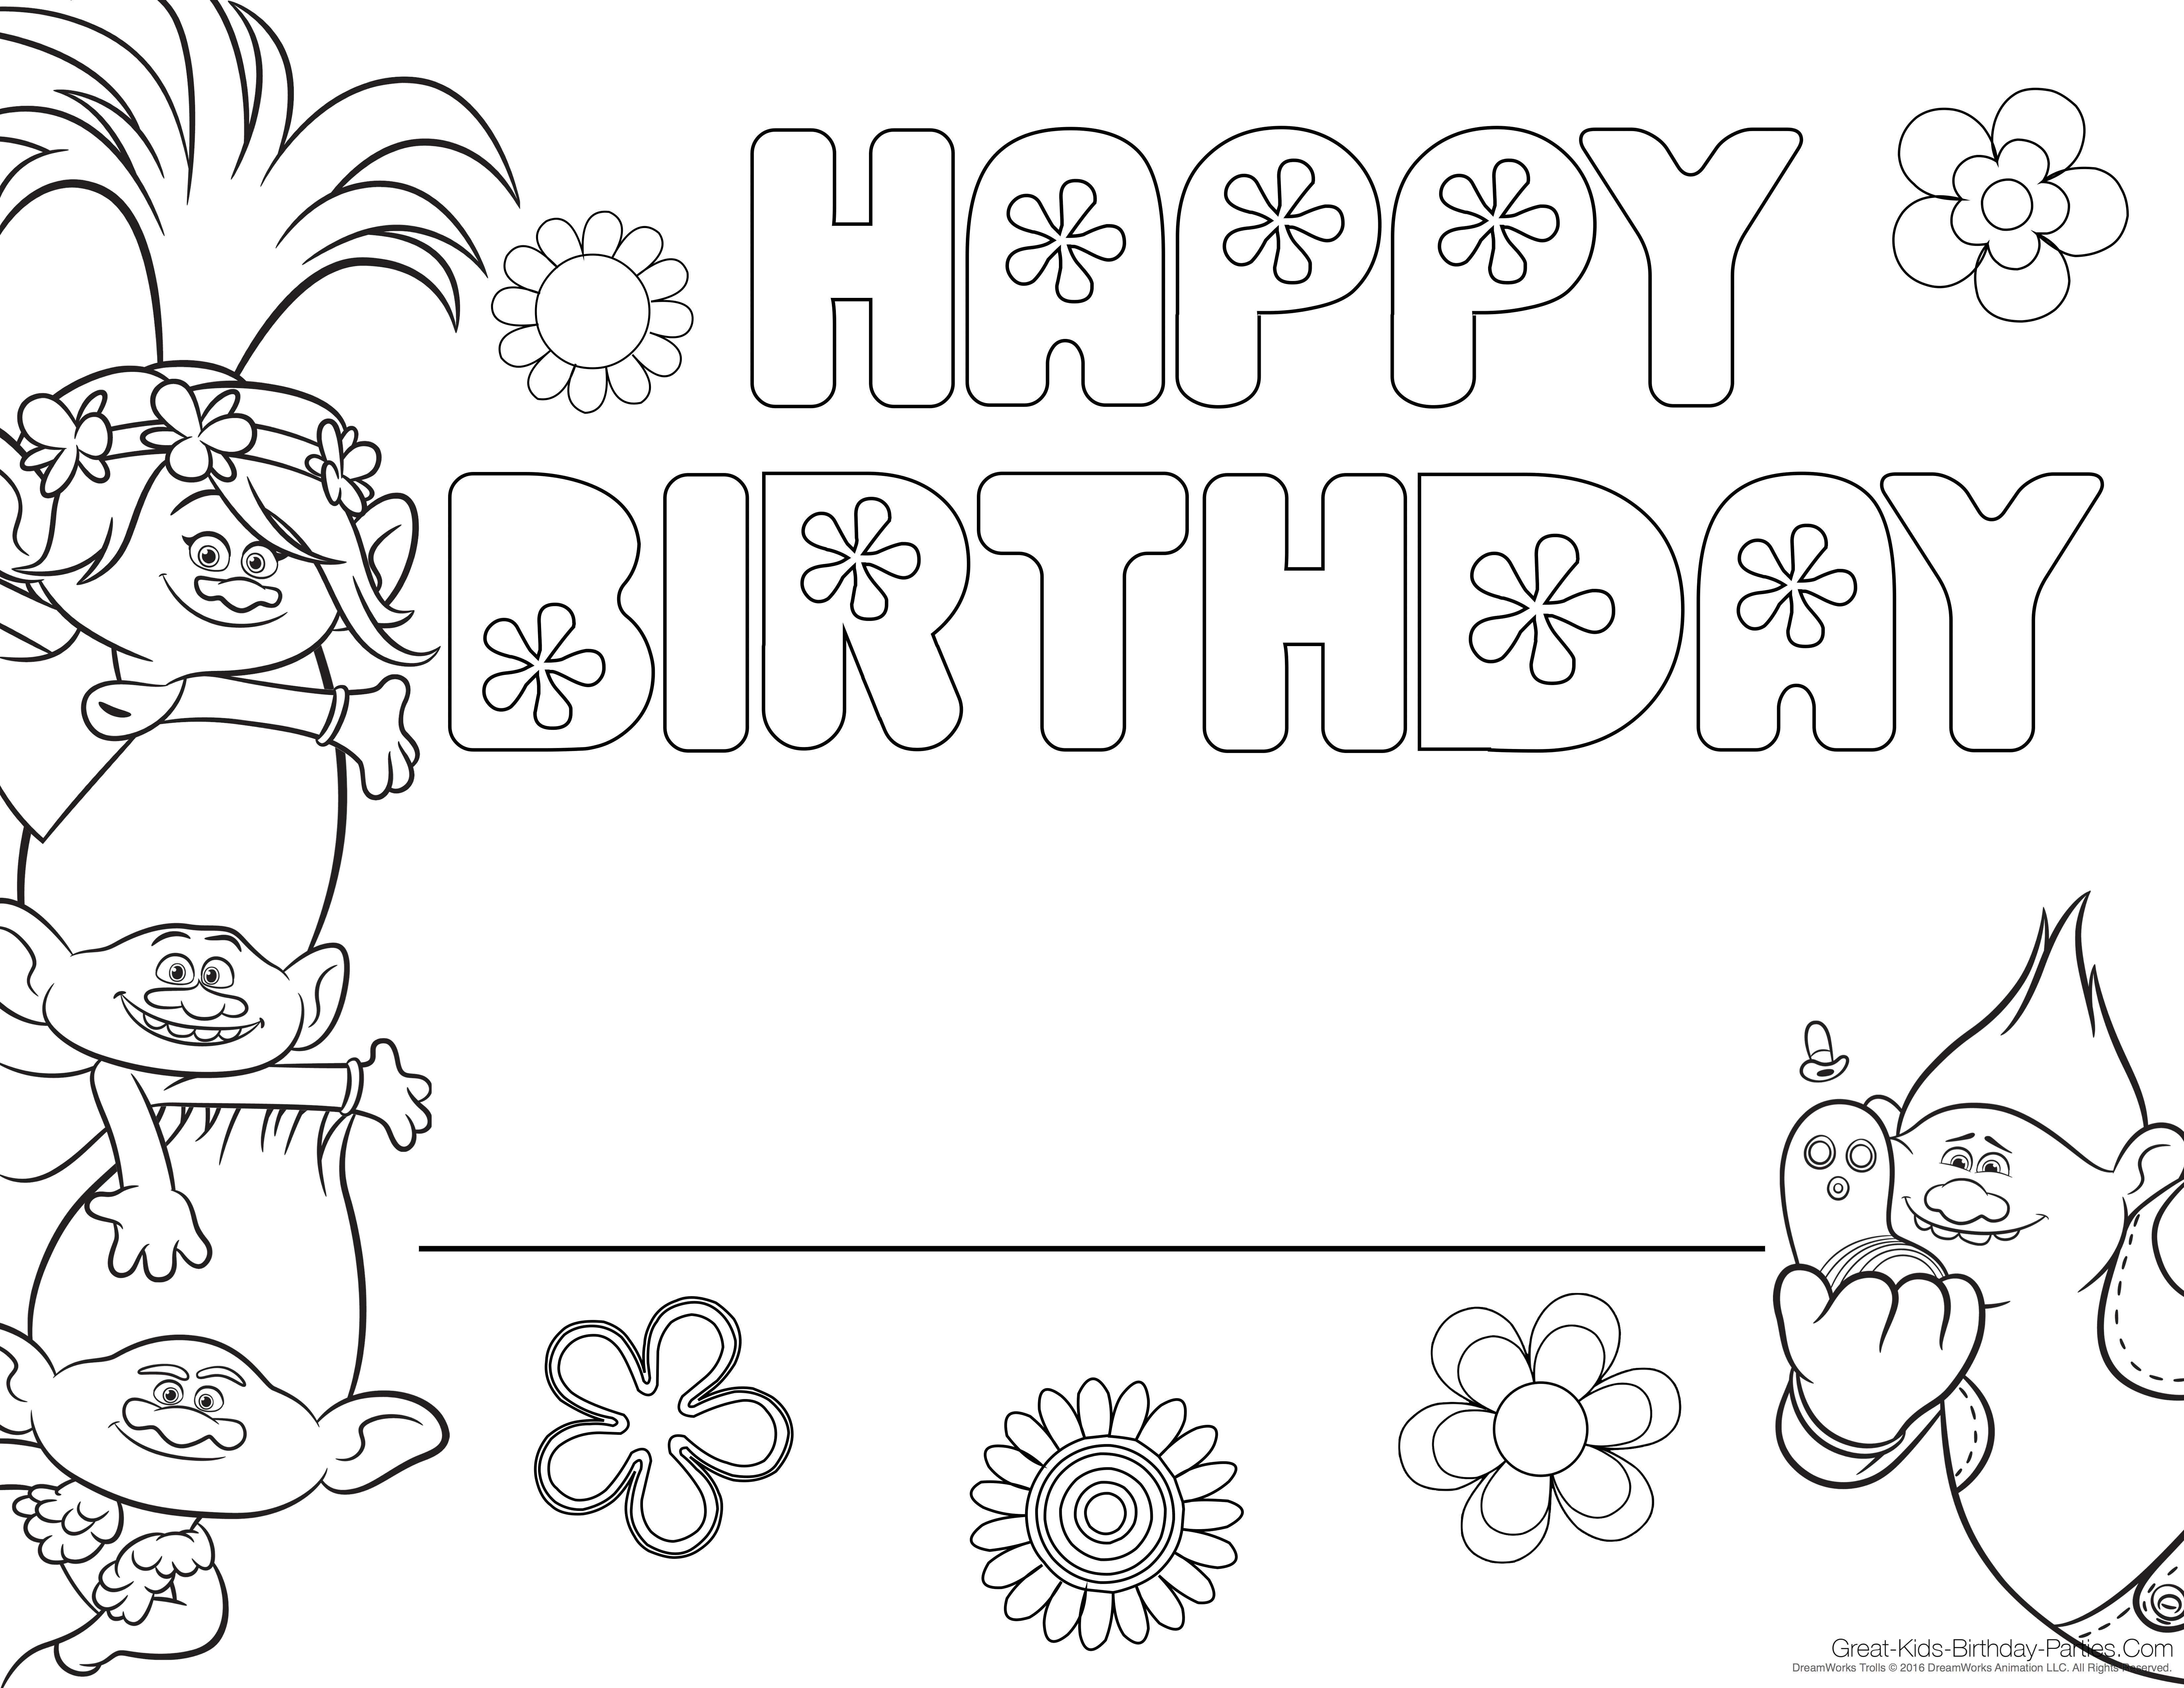 trolls-coloring-page.jpg 6,600×5,100 pixels | birthday ideal for ...